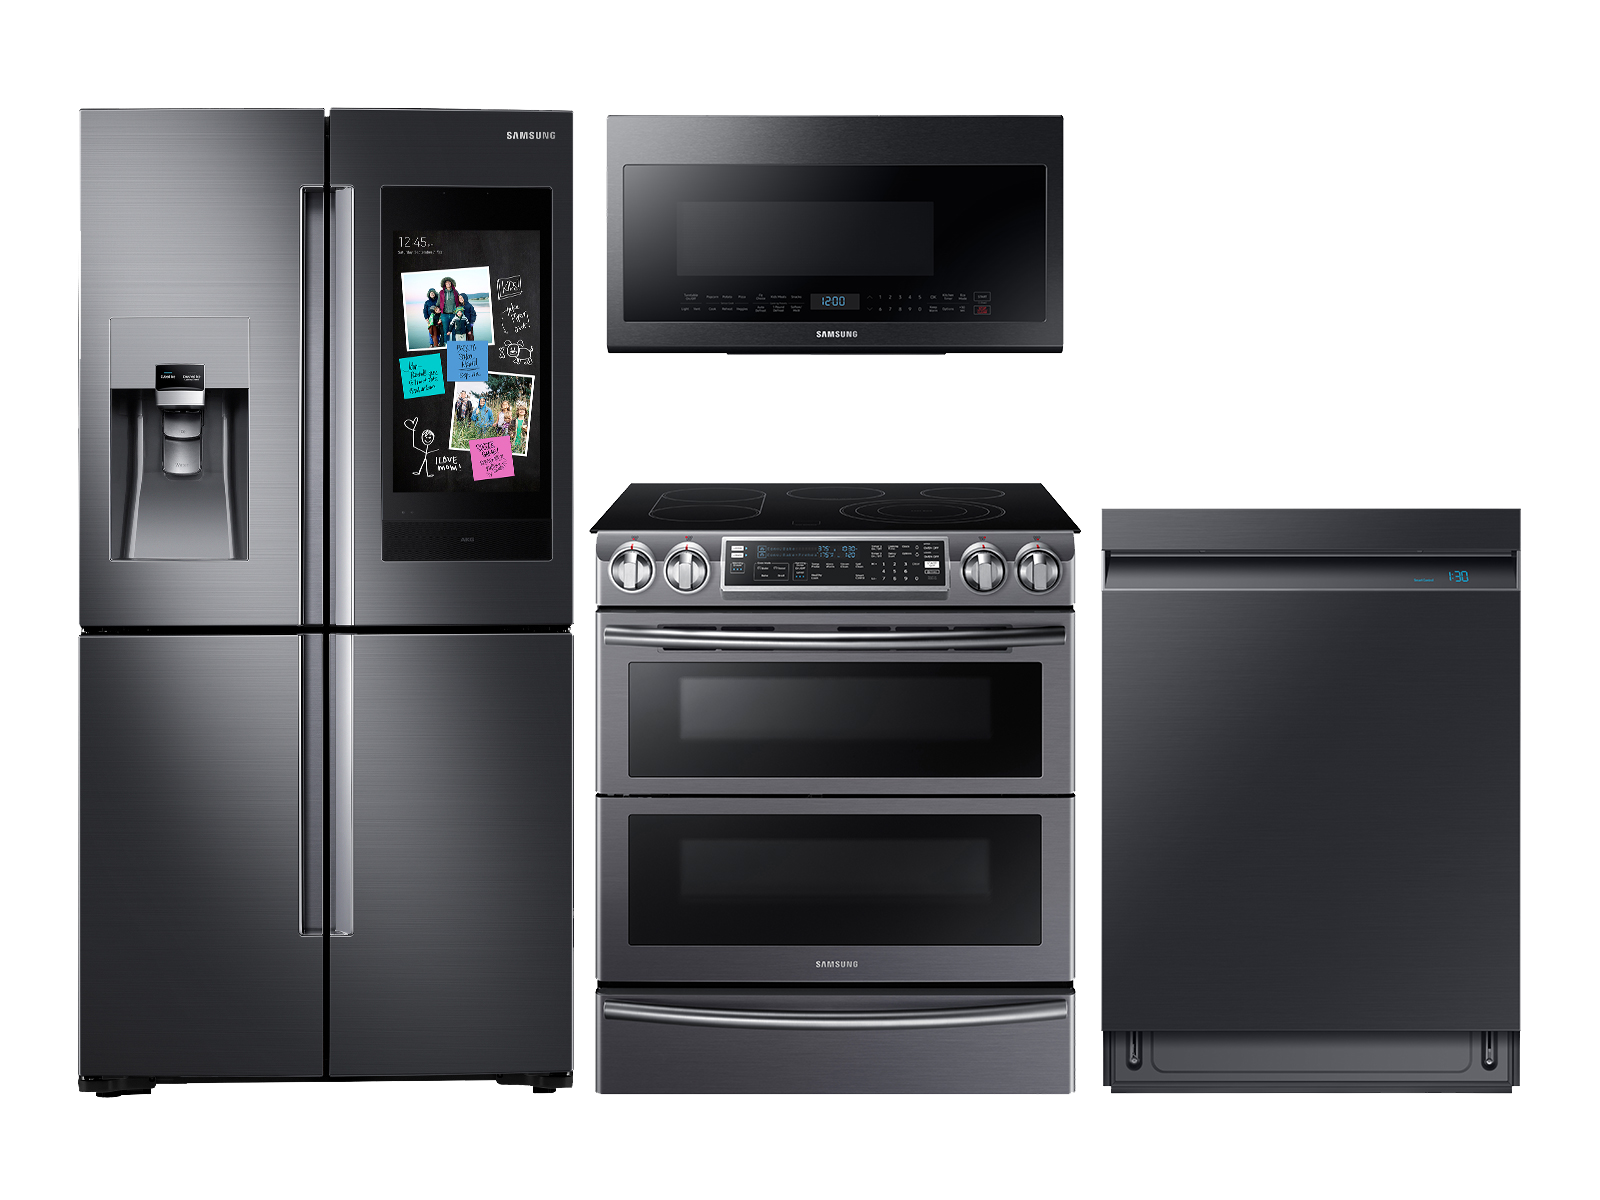 Samsung Family Hub Refrigerator + Slide-in Electric Range + Linear Wash Dishwasher + Microwave Kitchen Package in Black Stainless